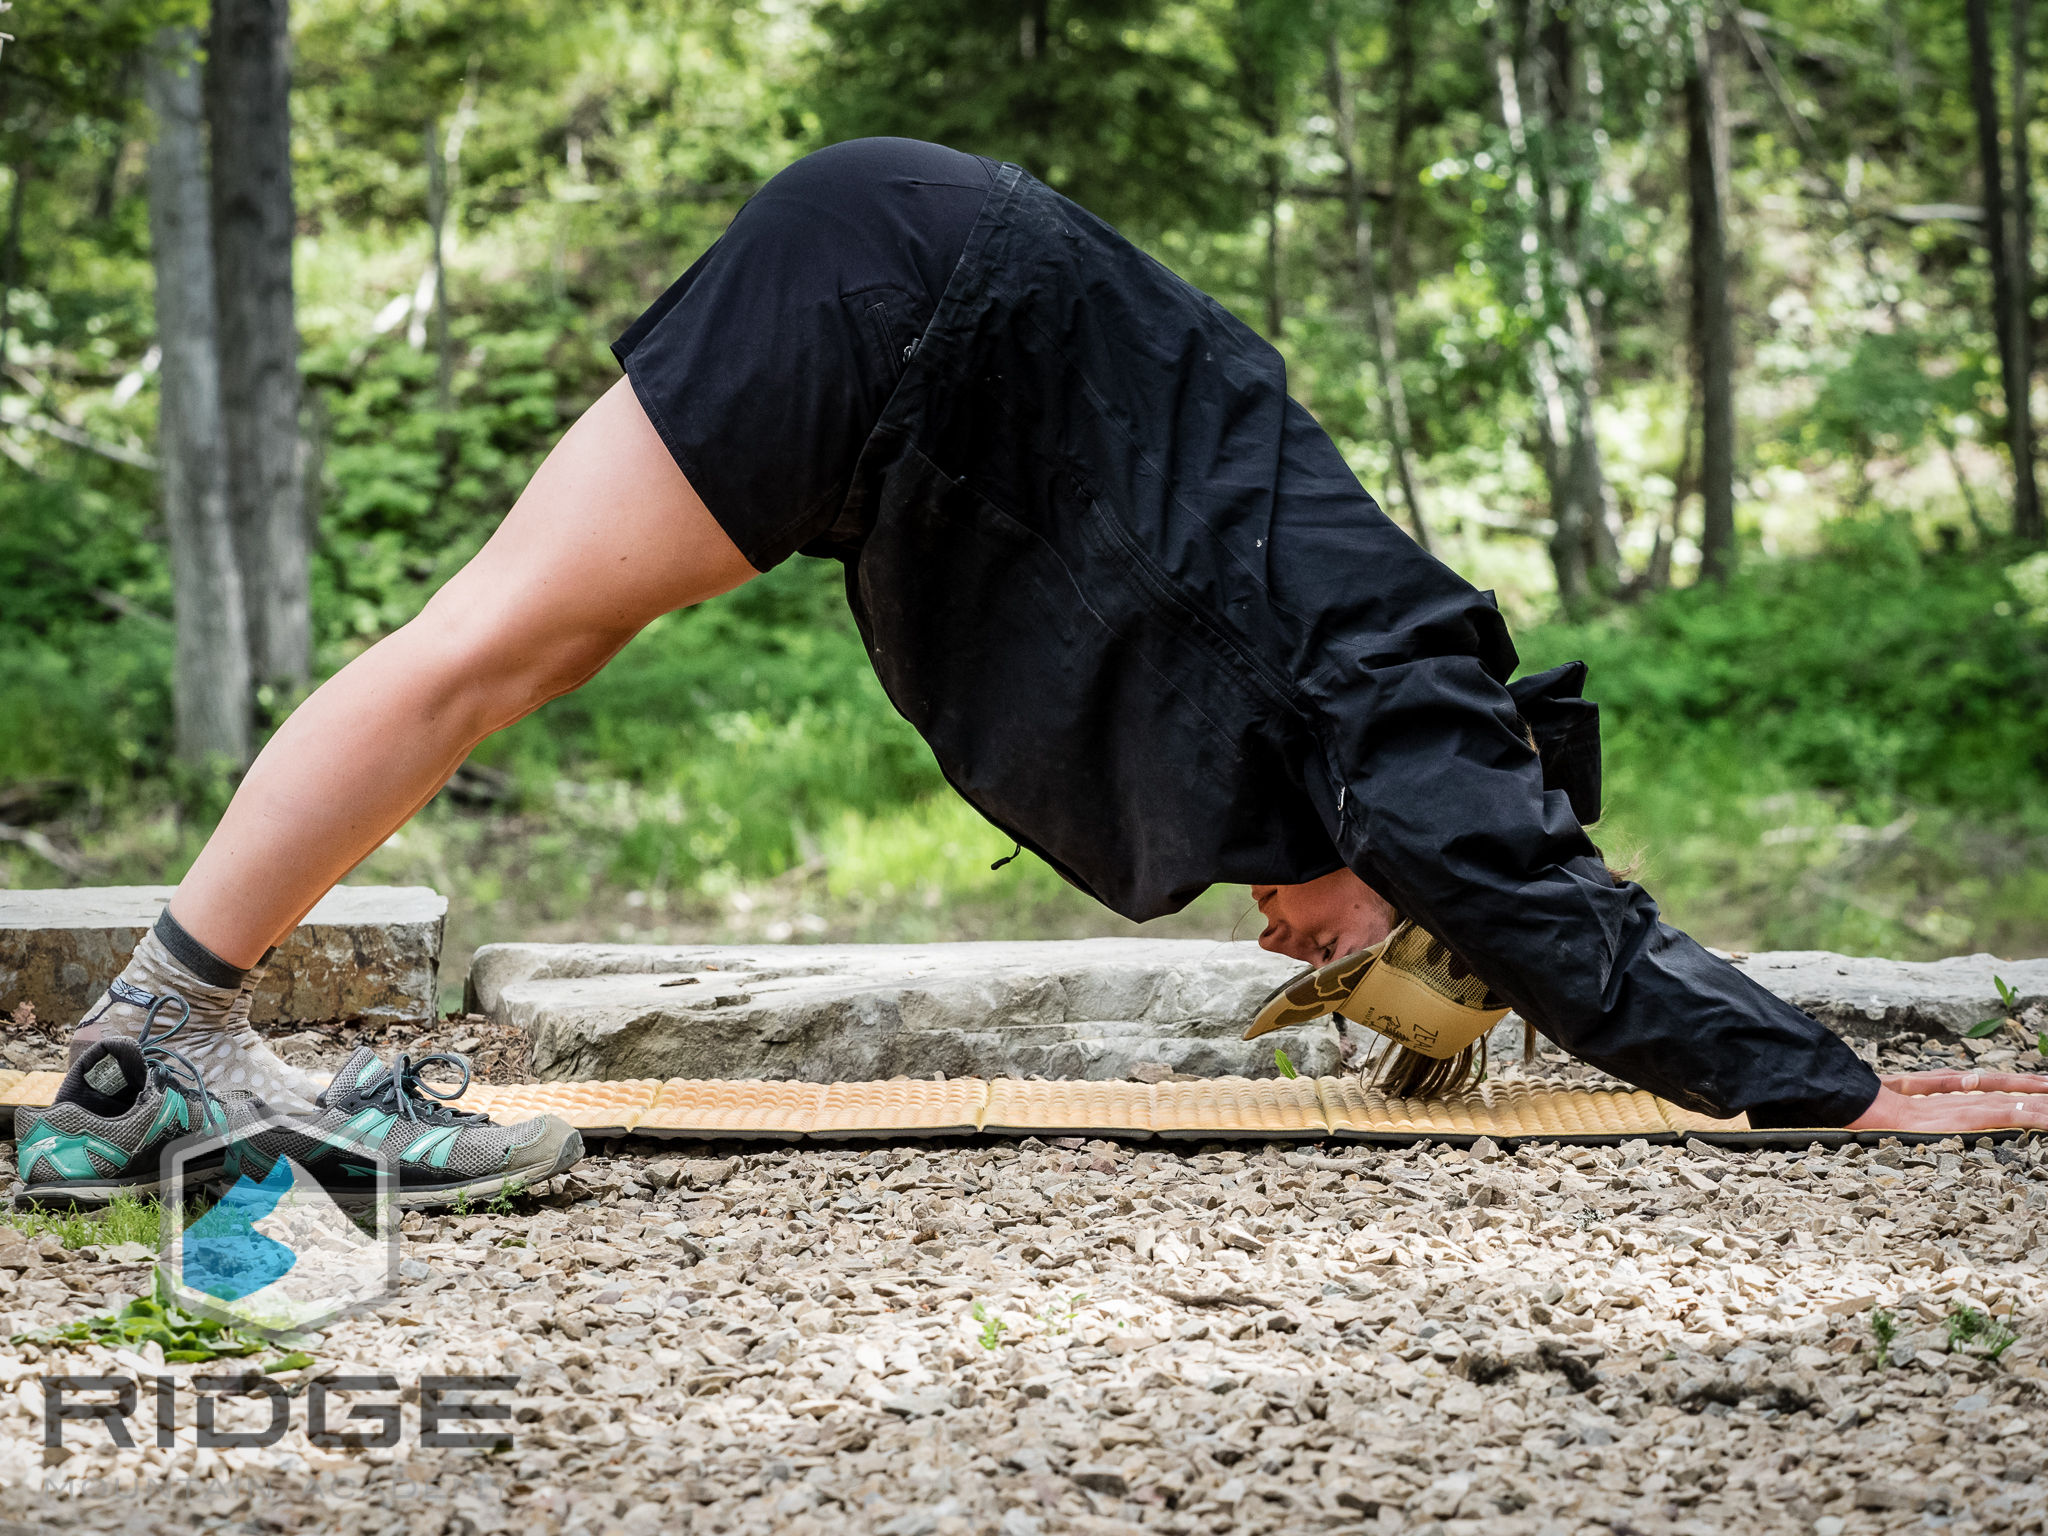 RIDGE Yoga coach, Cat, demonstrates Downward Dog in camp, before a day in the mountains.